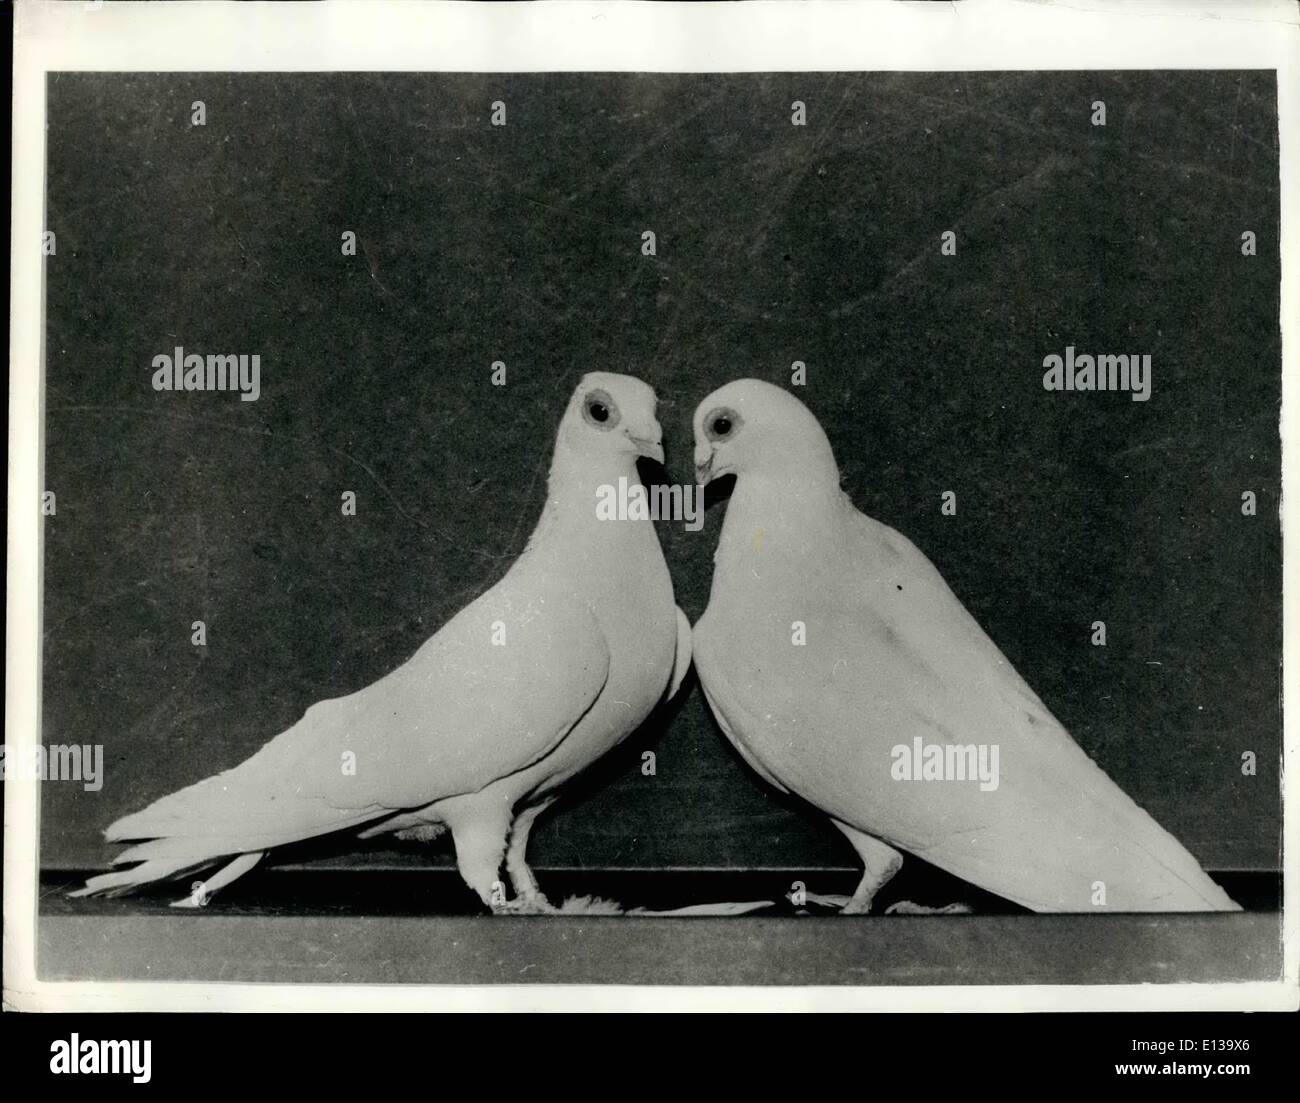 Feb. 29, 2012 - Soviet Scientists Cultivate New All White ''Dove Of Peace'': The soviet expert have managed to cultivate a real - Stock Image